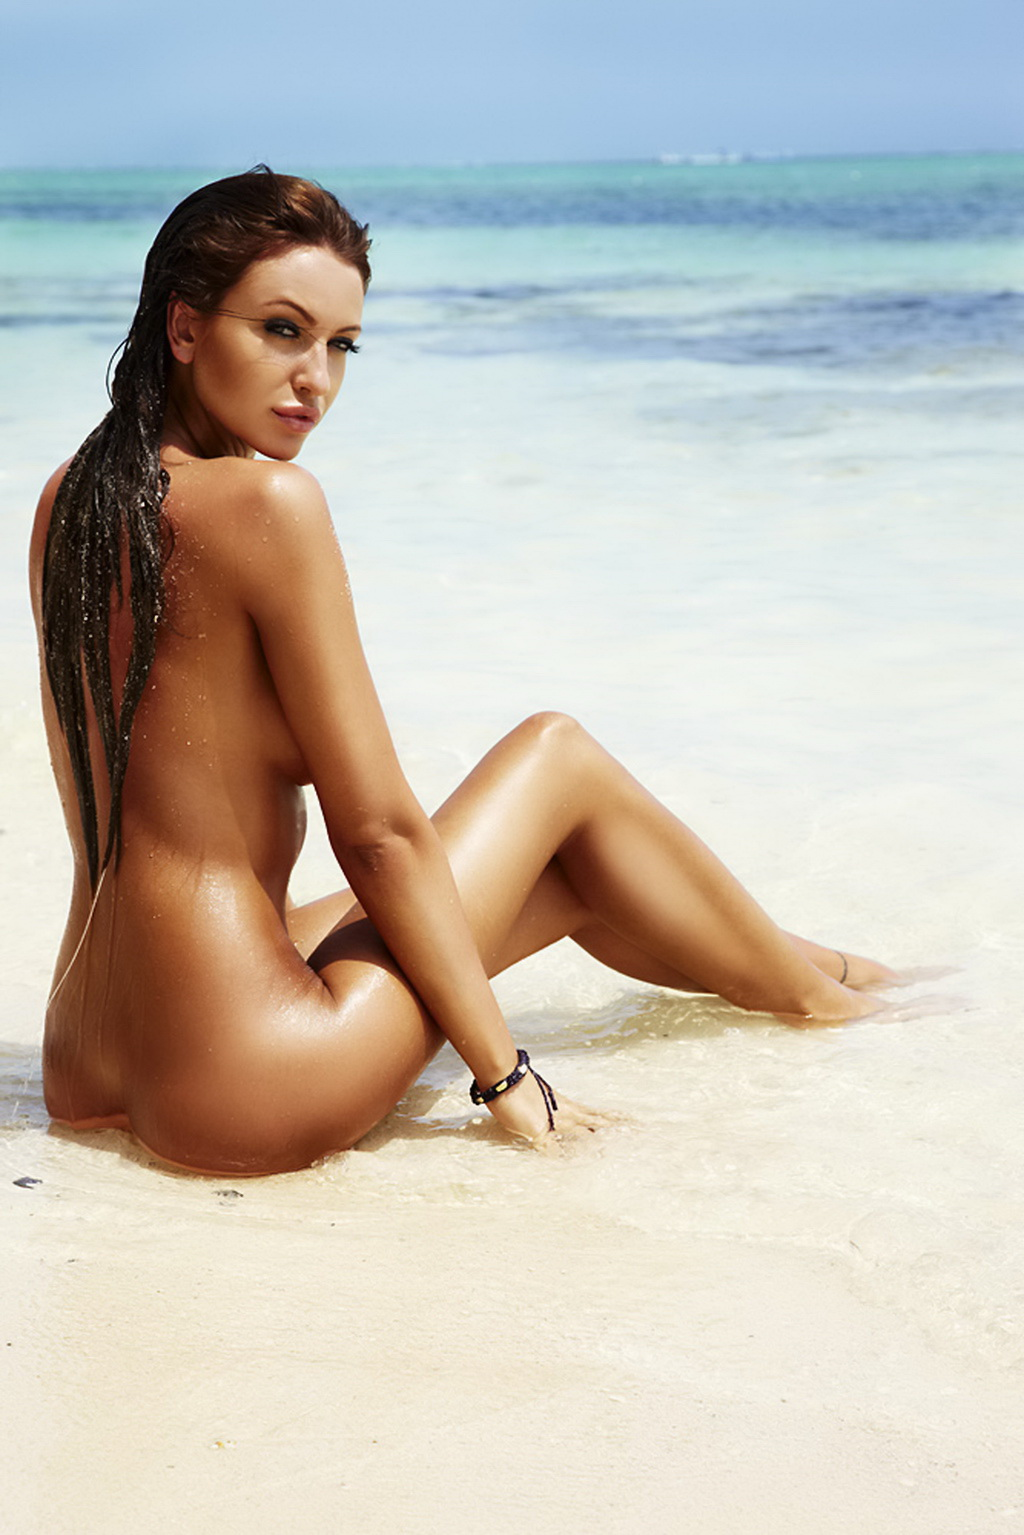 Sorry, that sexy beach beauty